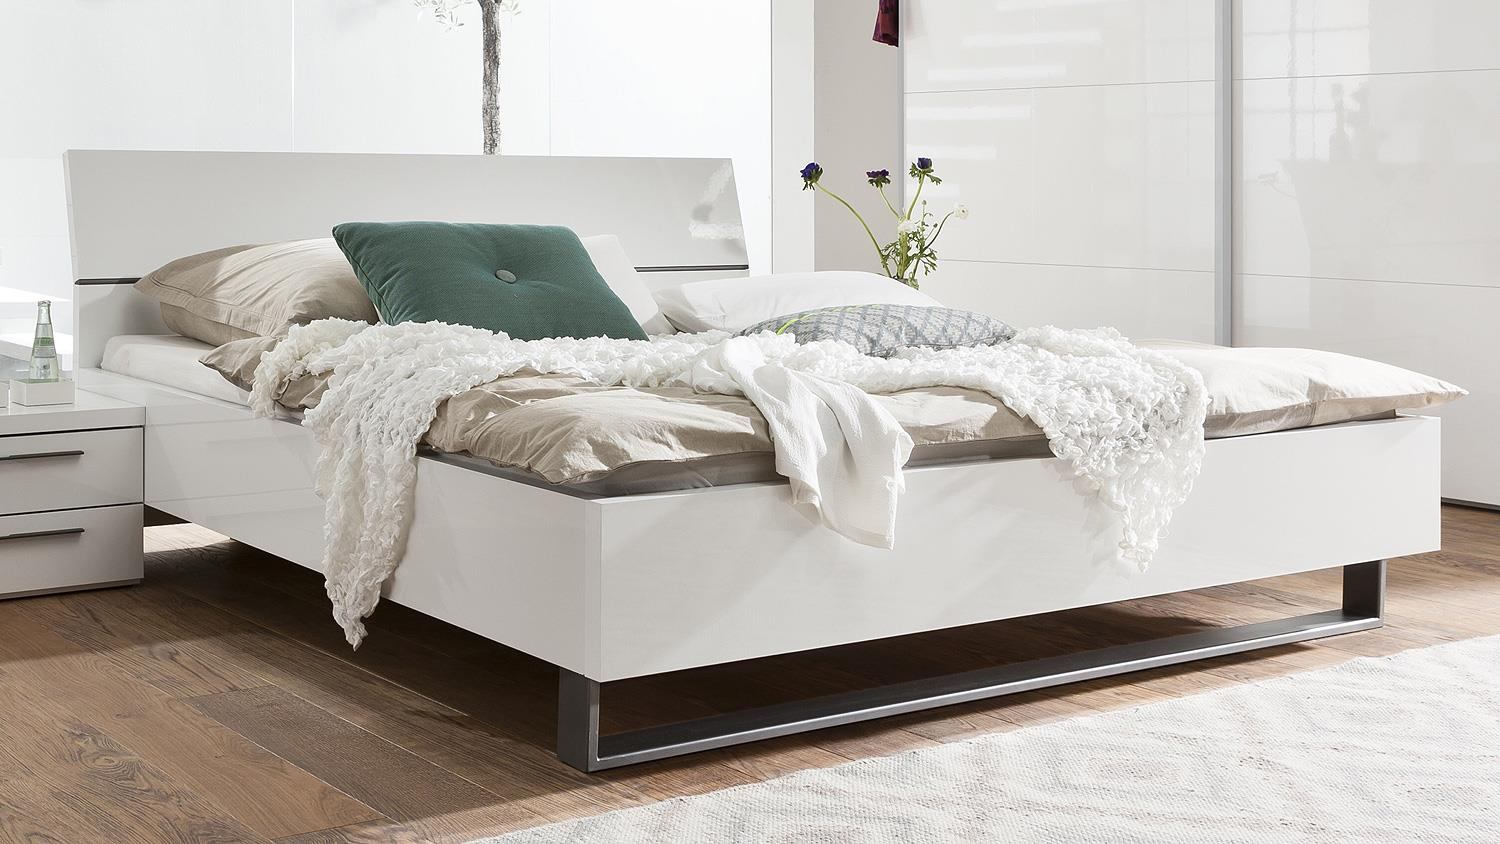 doppelbett modern doppelbett modern kopfteil polster basis quadro with doppelbett modern. Black Bedroom Furniture Sets. Home Design Ideas